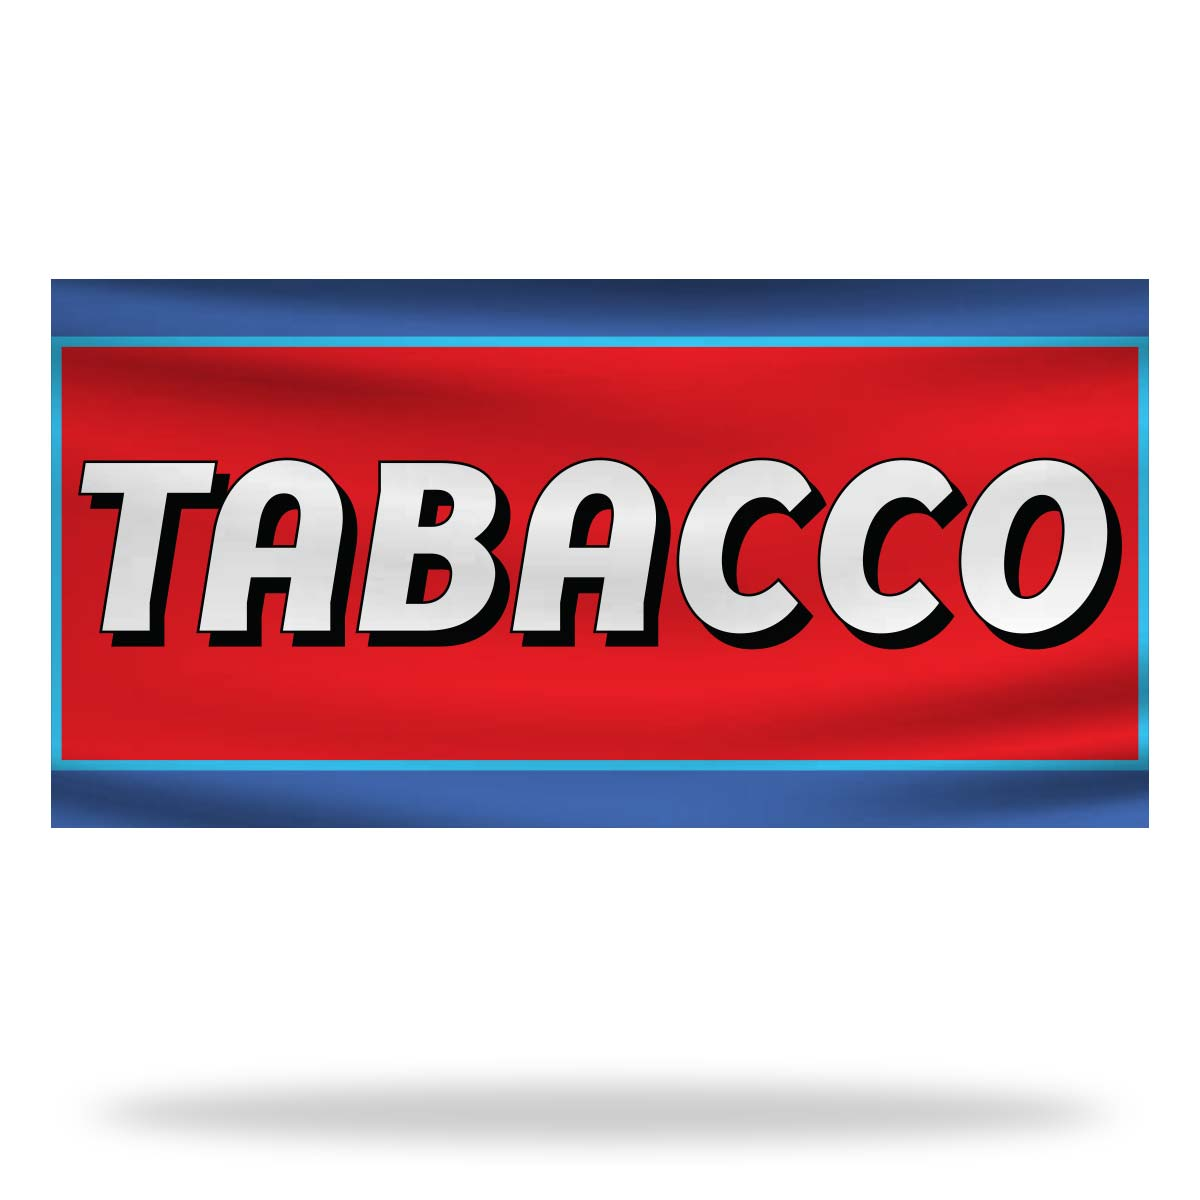 Tobacco Flags & Banners Design 01